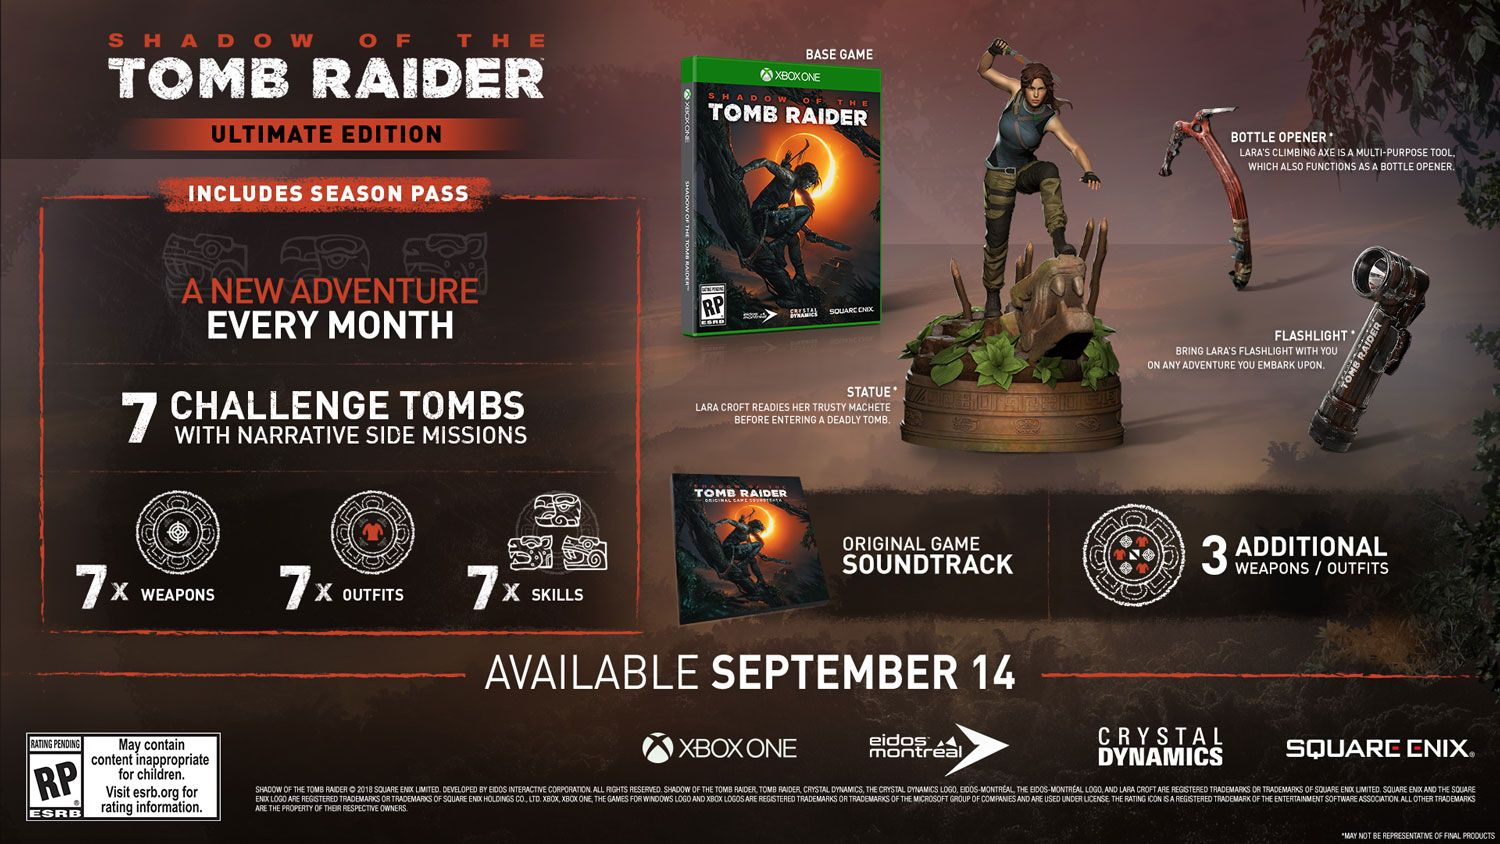 Коллекционное издание Shadow of the Tomb Raider - Ultimate Edition